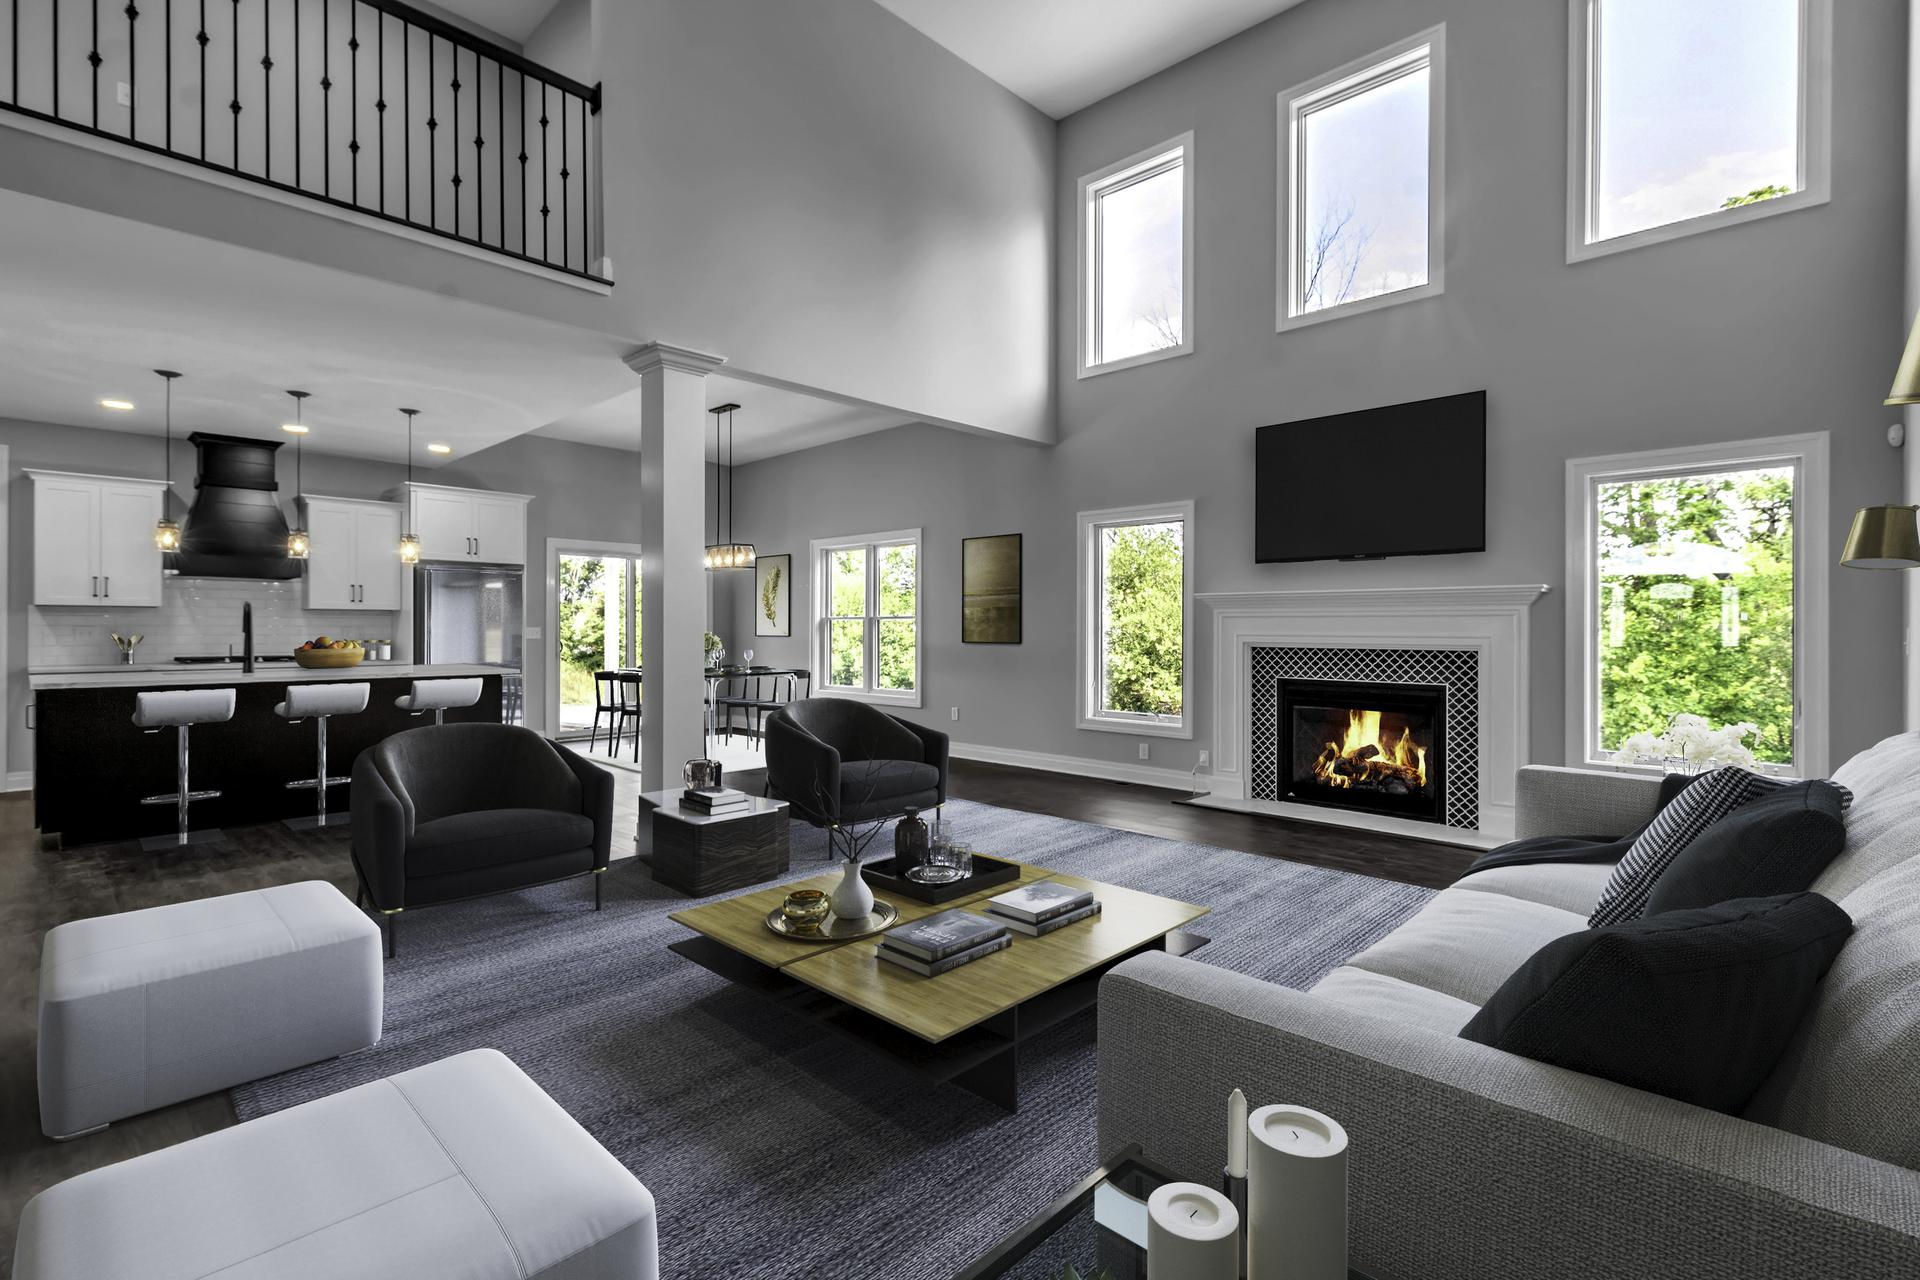 Birdsong Estates New Homes in Orchard Park, NY